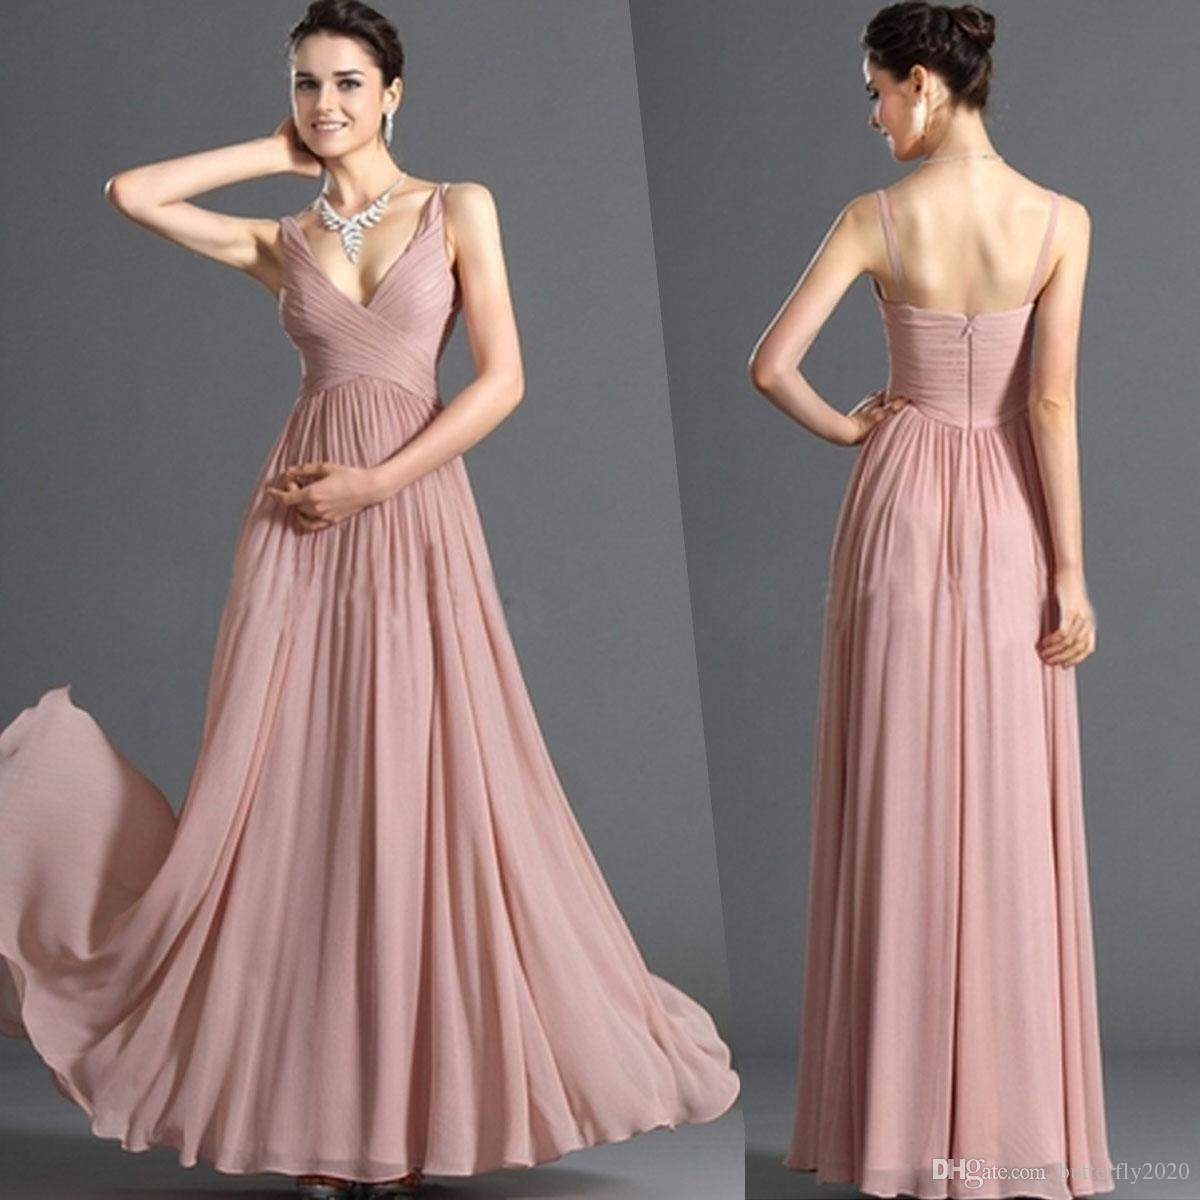 Skin pink a line chiffon bridesmaid dresses spaghetti strap v neck skin pink a line chiffon bridesmaid dresses spaghetti strap v neck wedding bridesmaids dress maid of honor gowns bridesmaid dresses plus size bridesmaid ombrellifo Choice Image